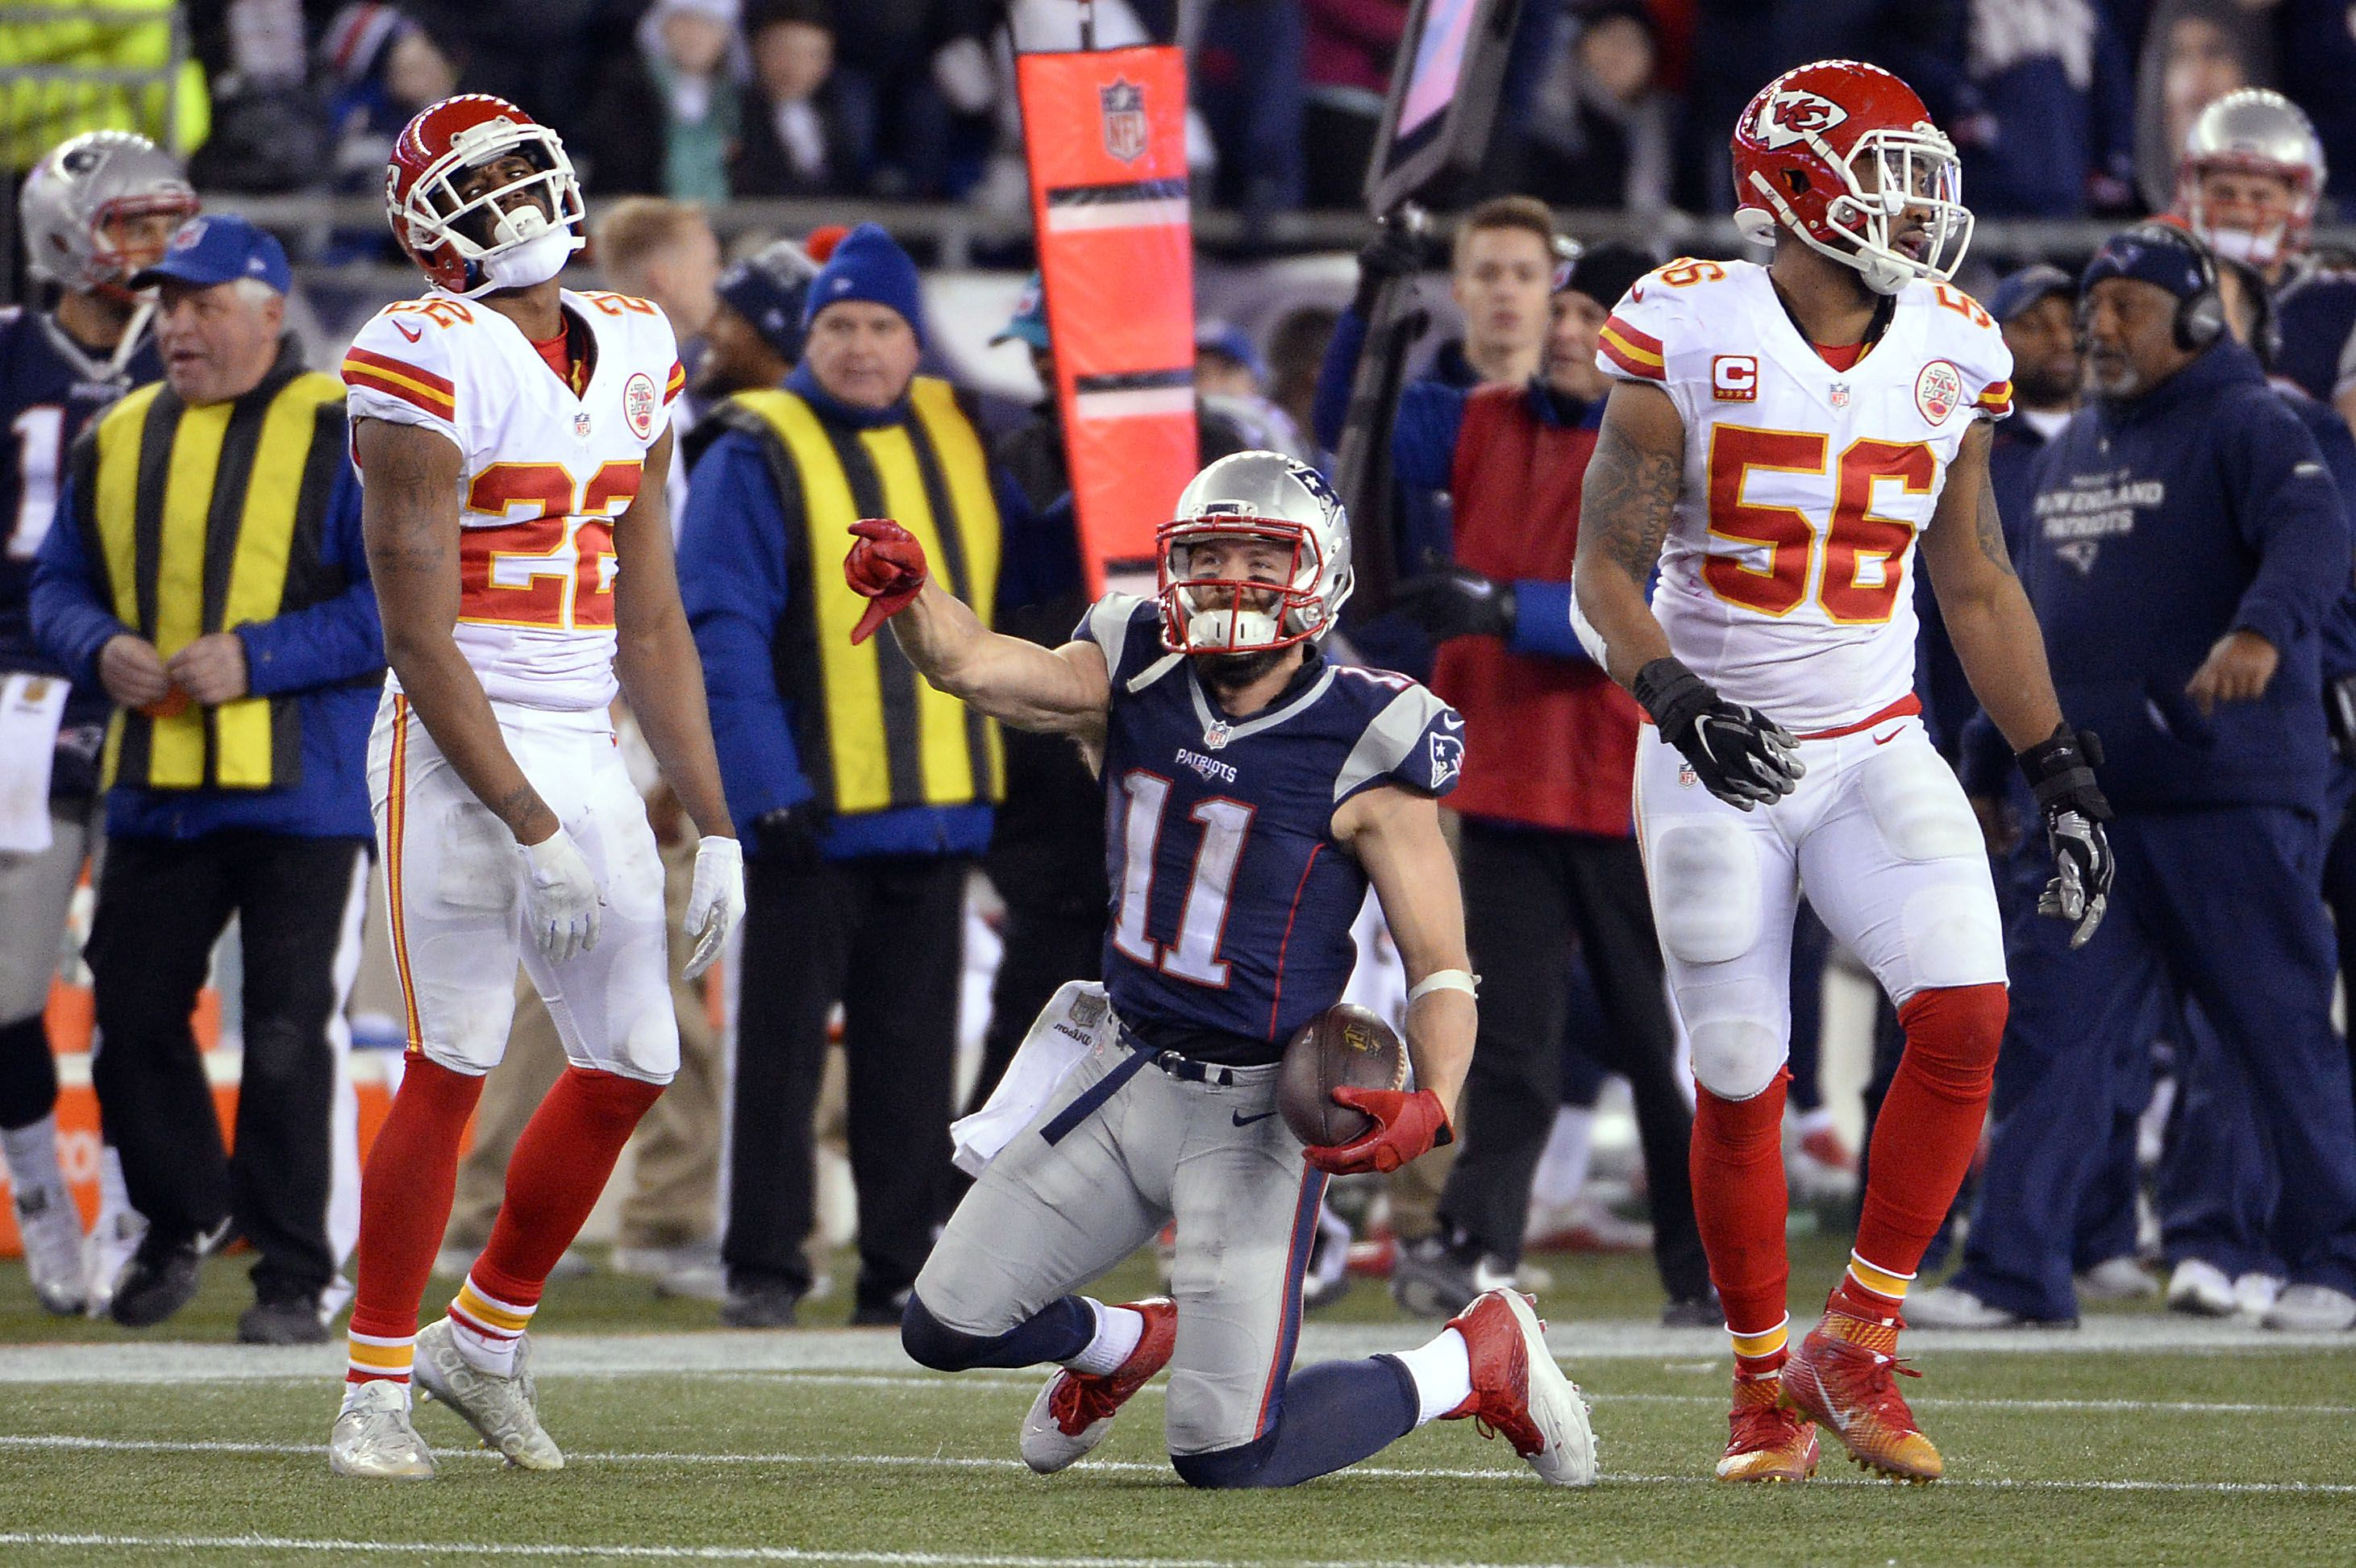 Julian Edelman Star Pats Remind You The Force Is Strong With Patriots Julian Edelman New England Patriots Patriots